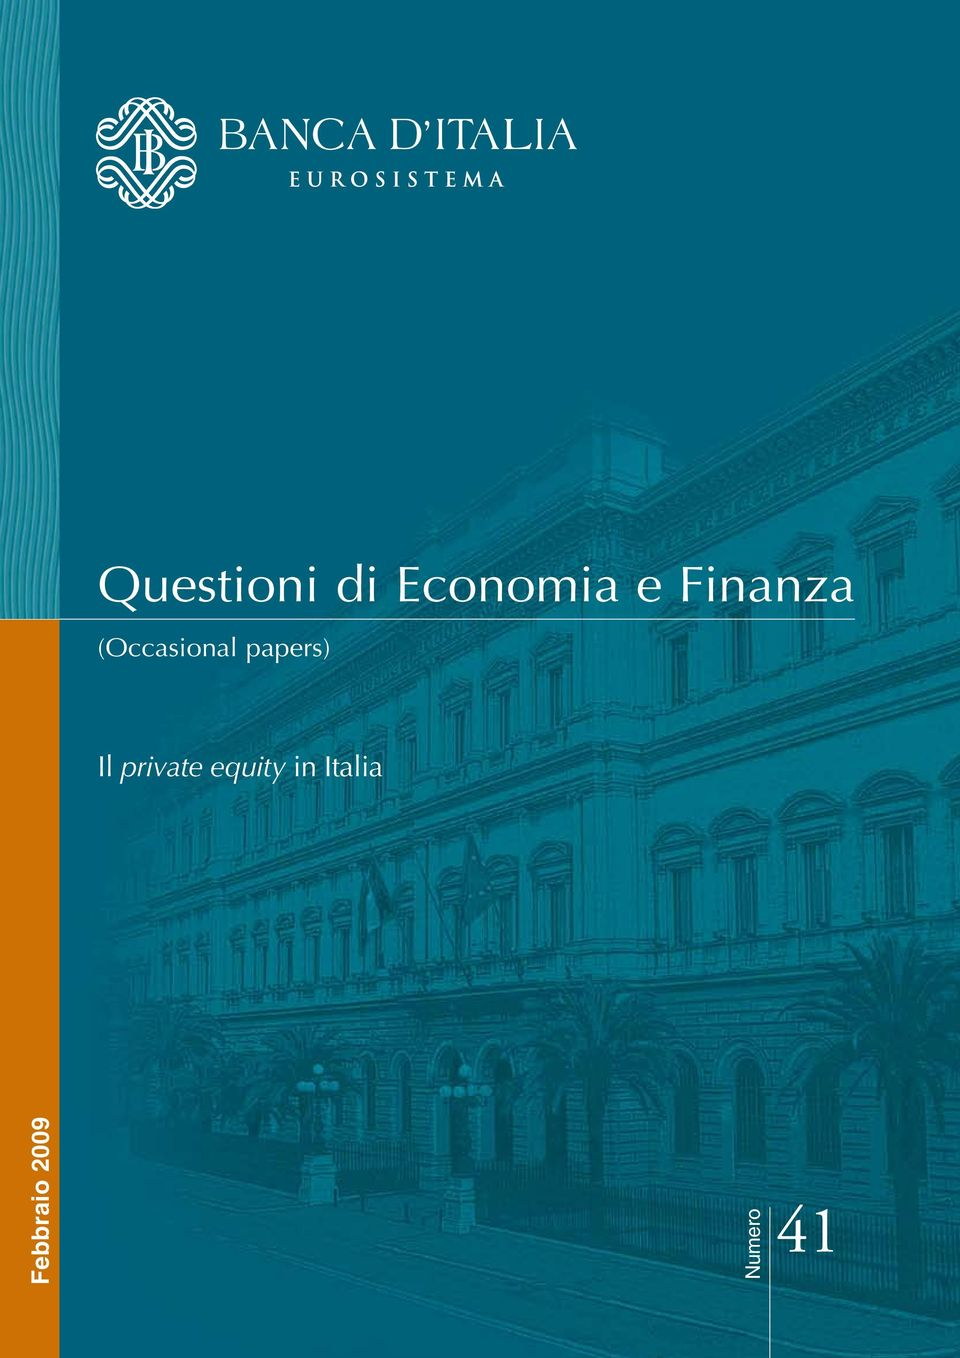 papers) Il private equity